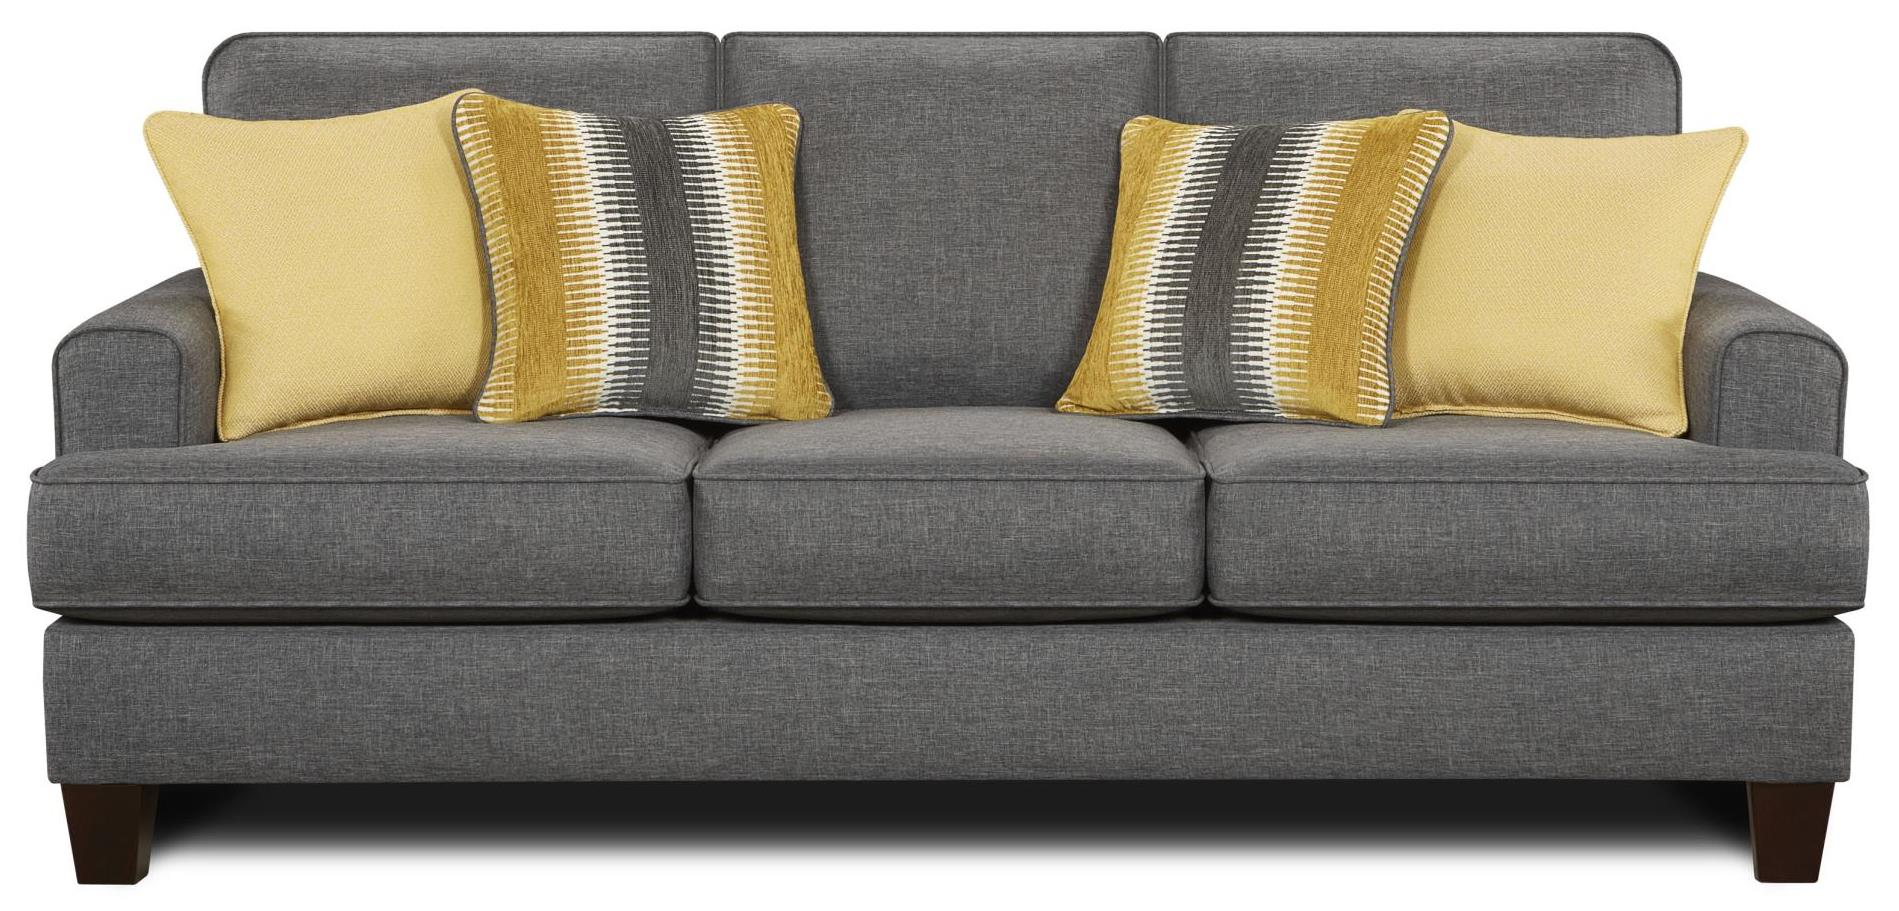 2600 Sofa by Fusion Furniture at Furniture Superstore - Rochester, MN